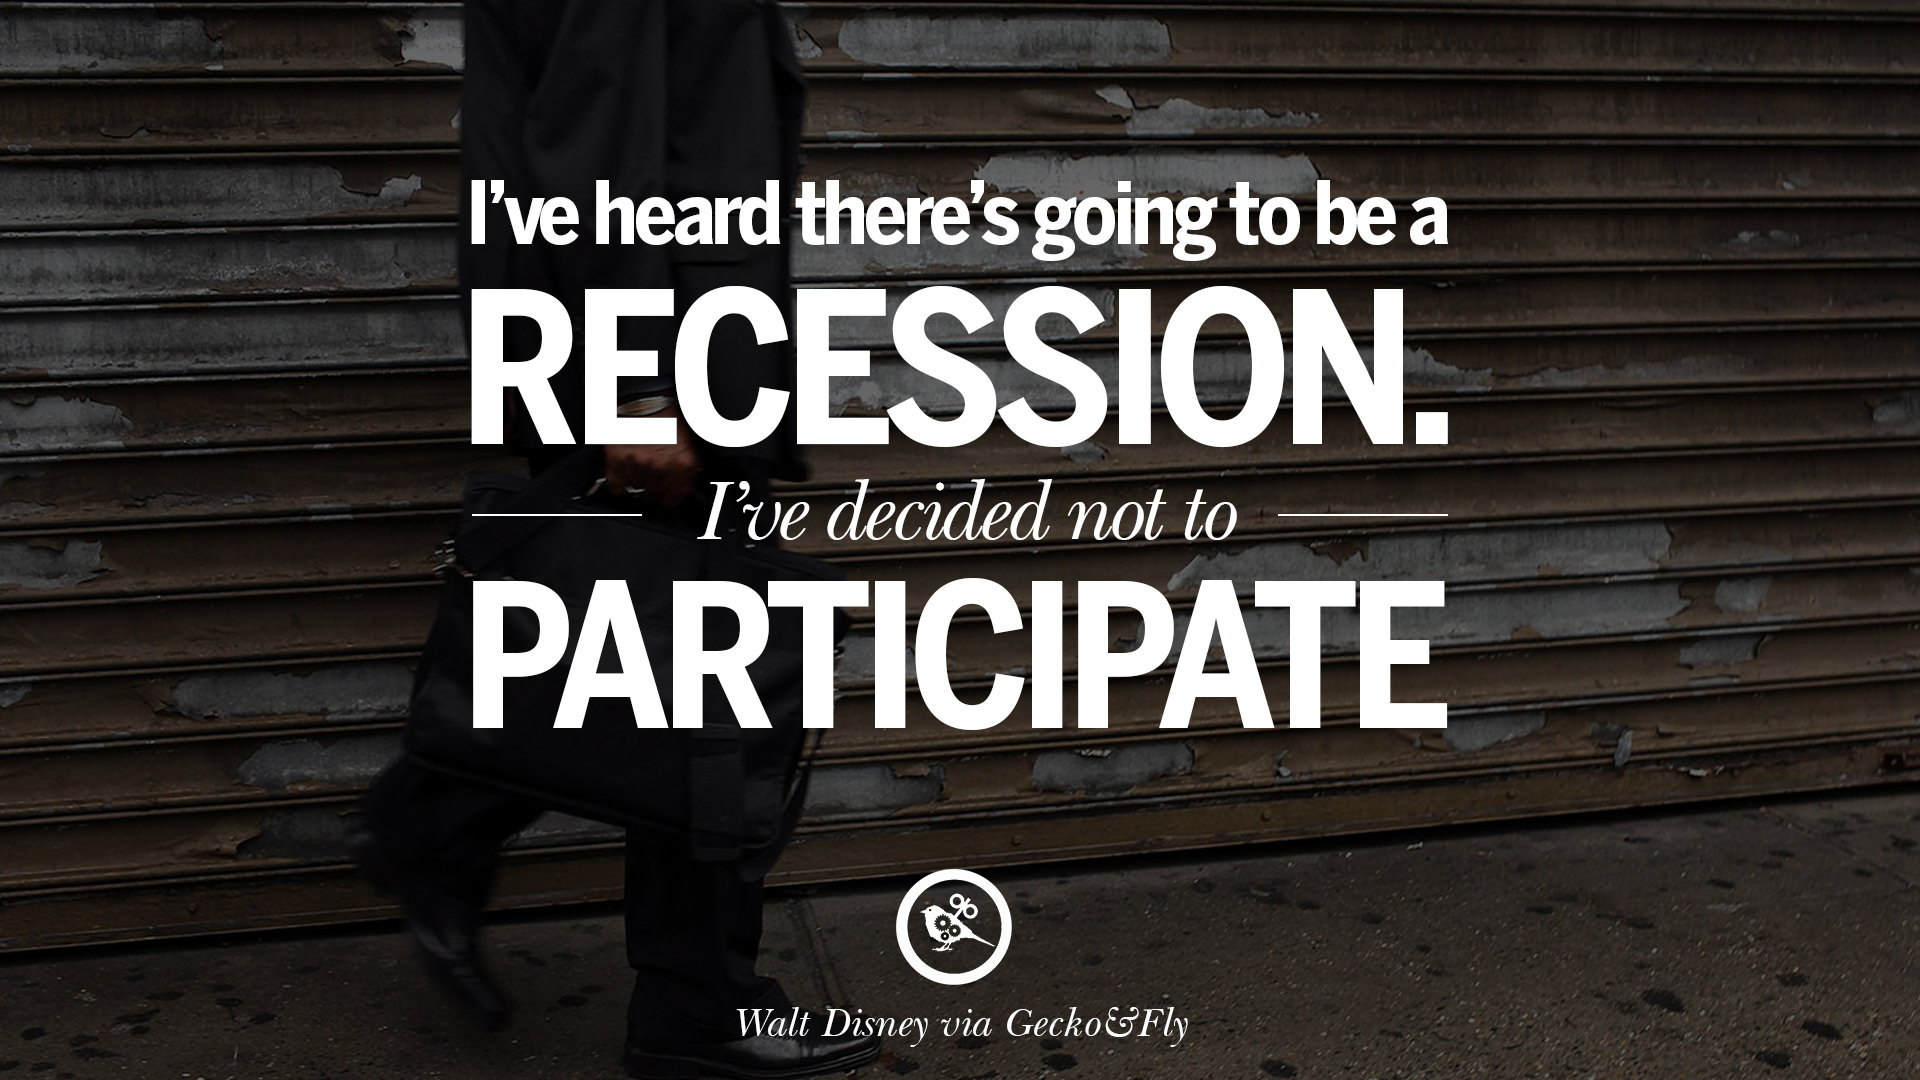 be a recession. I've decided not to participate. - Walt Disney great ...